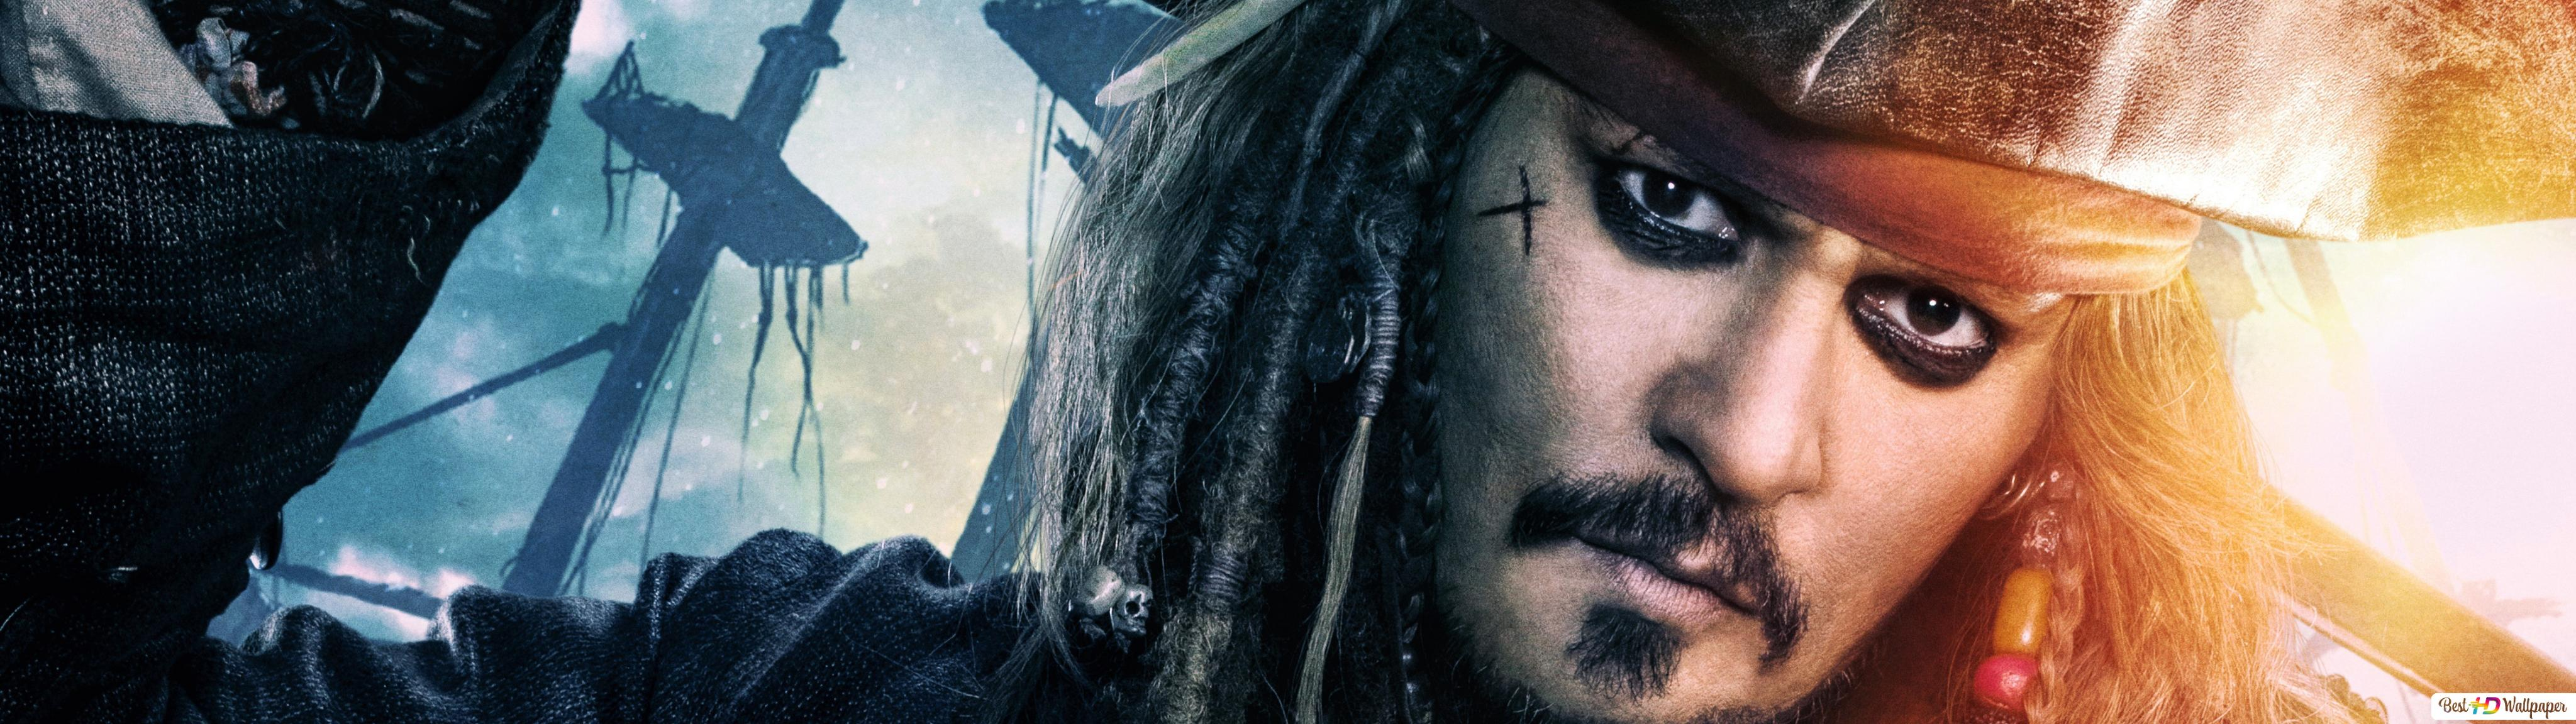 Captain Jack Sparrow HD wallpaper download